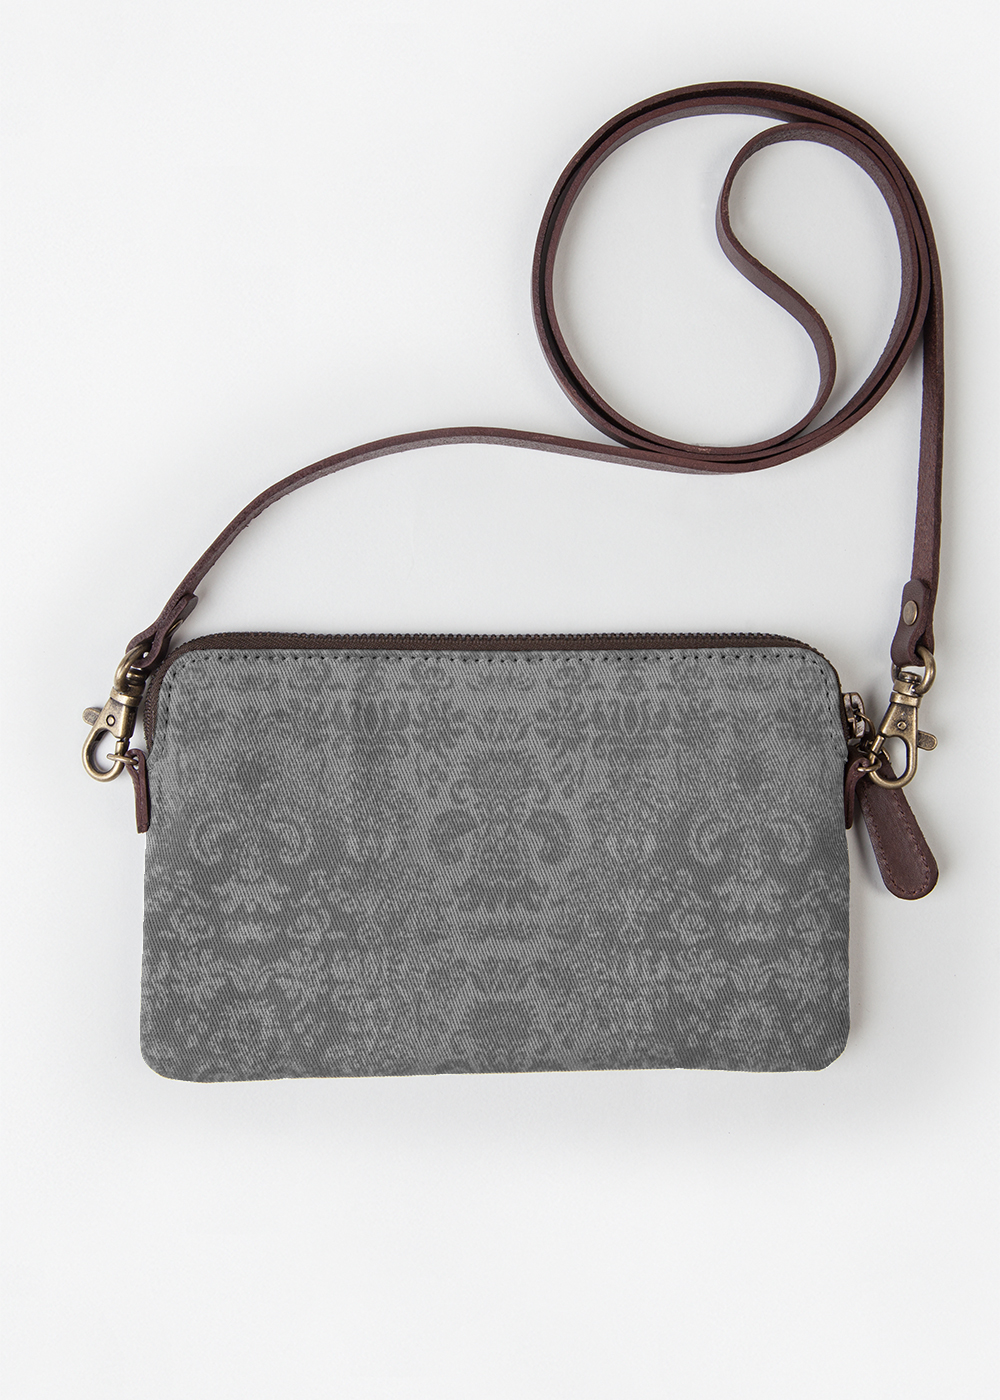 VIDA Statement Bag - Winter 1 by VIDA CjMlQ